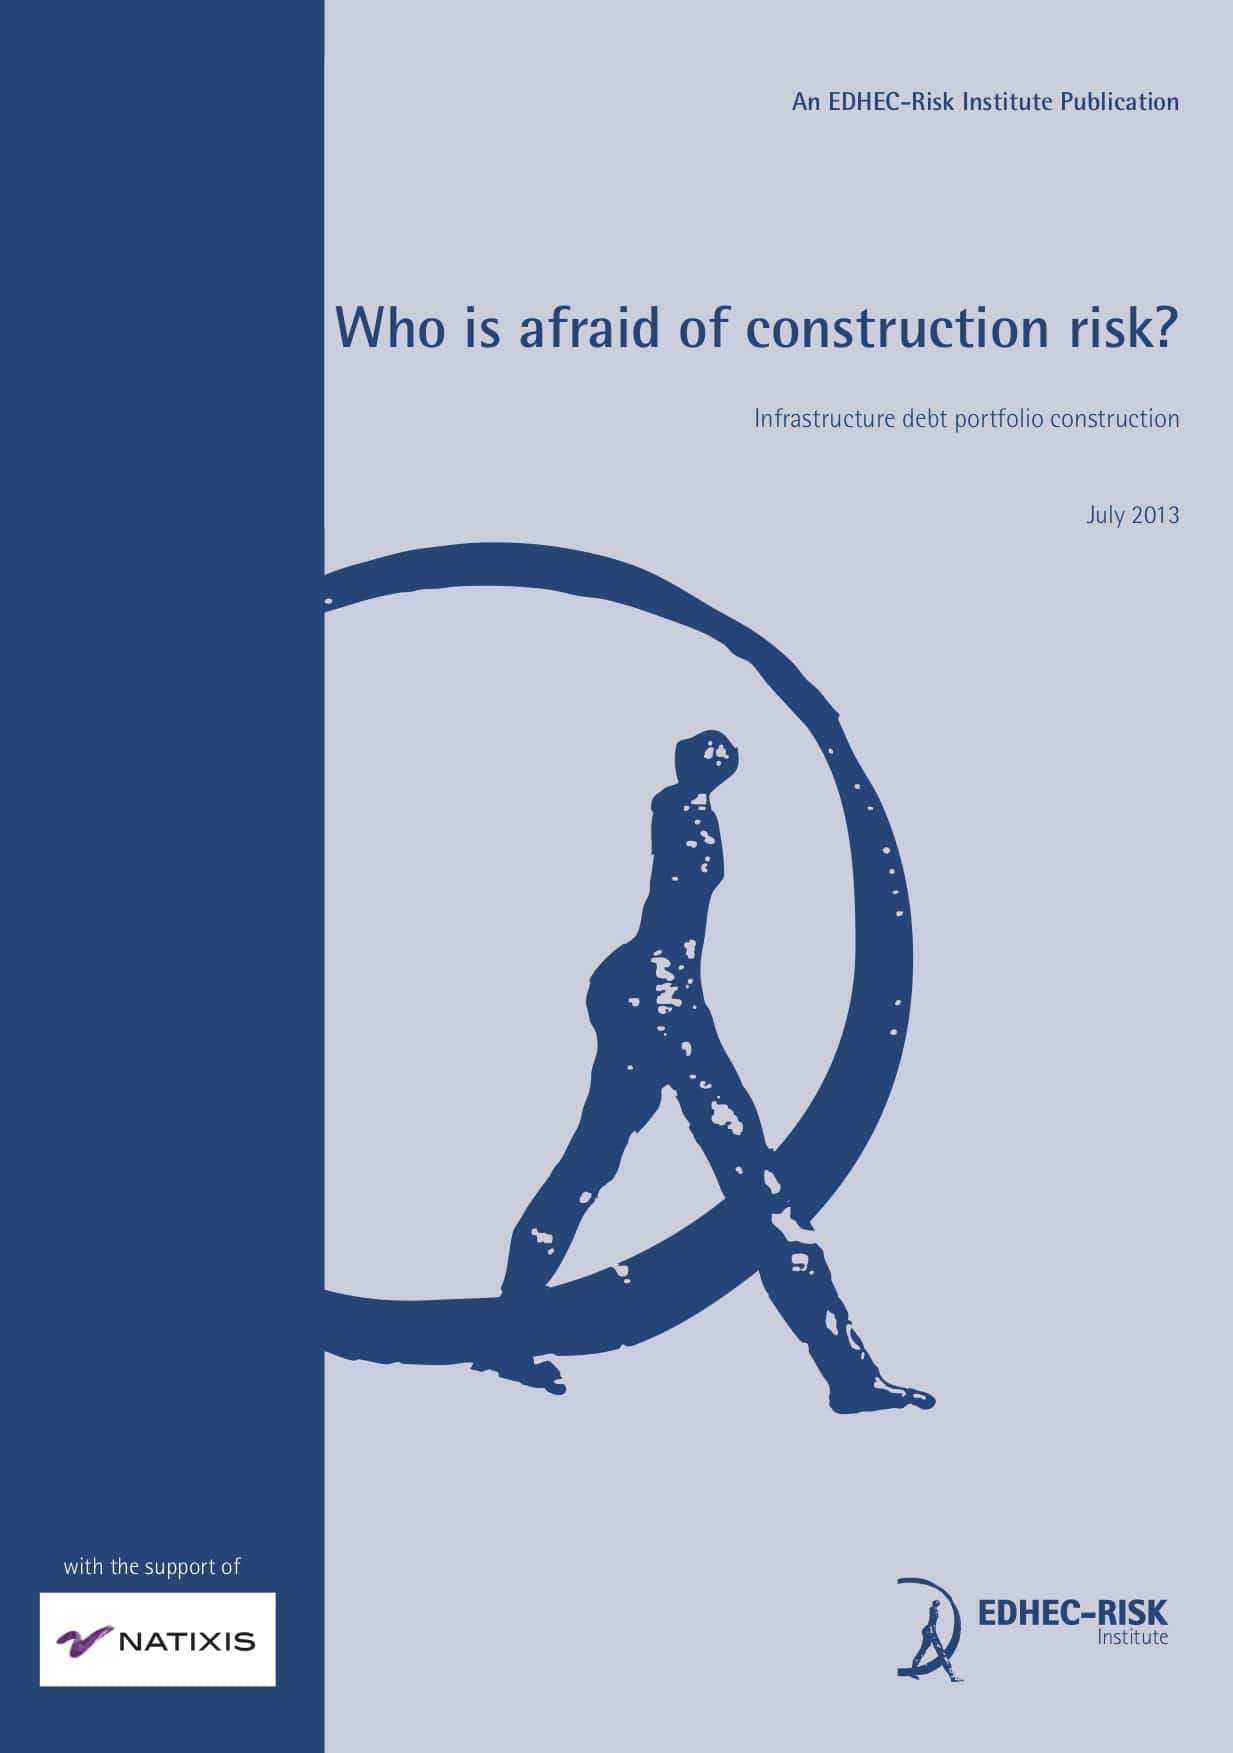 Who is afraid of Construction Risk? Portfolio Construction with Infrastructure Debt